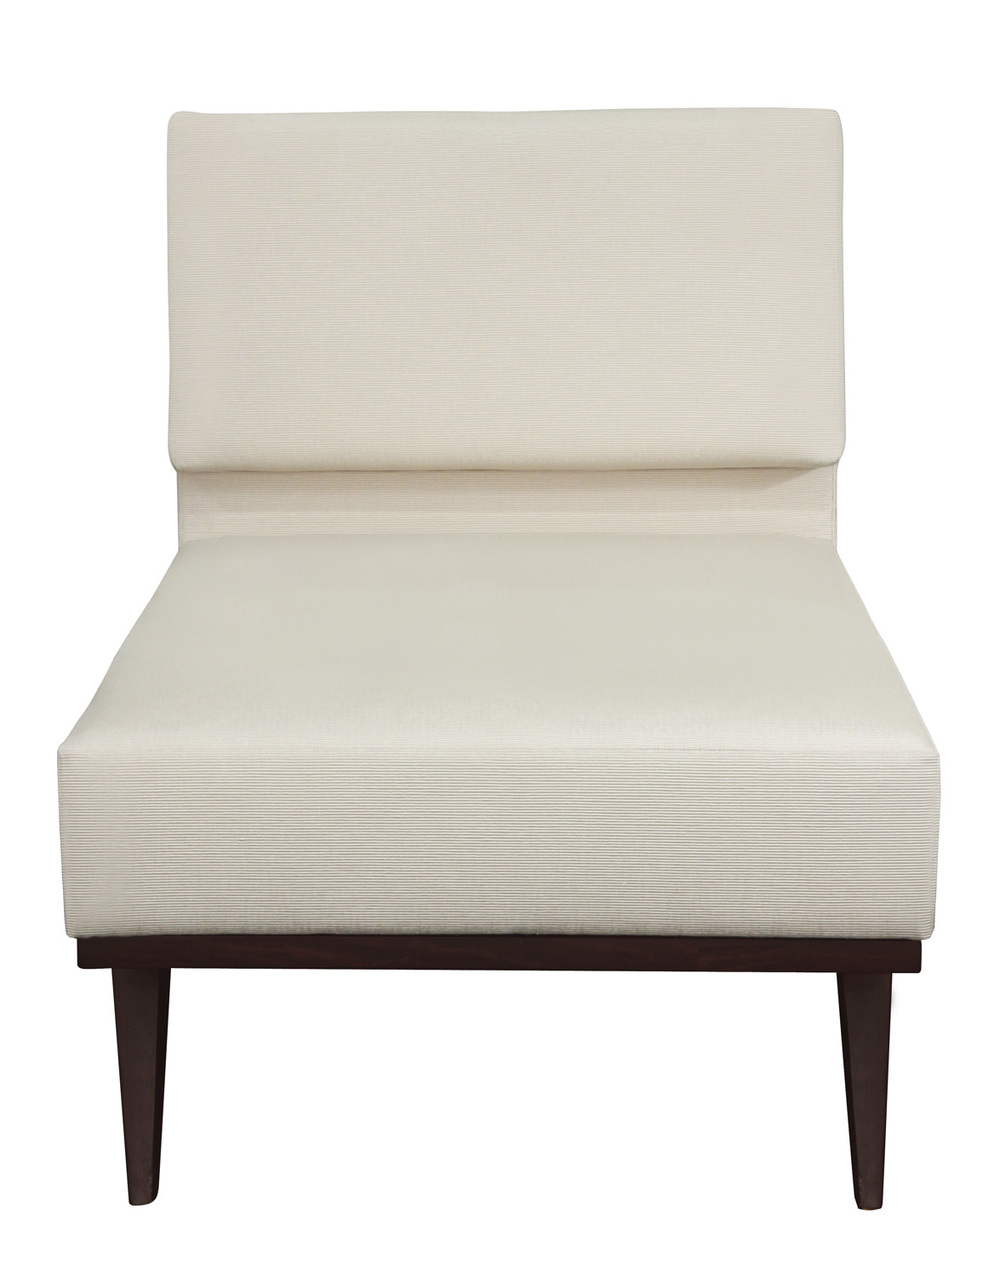 McCobb 95 attr sculpted bk slipperchairs37 detail2 hires.jpg